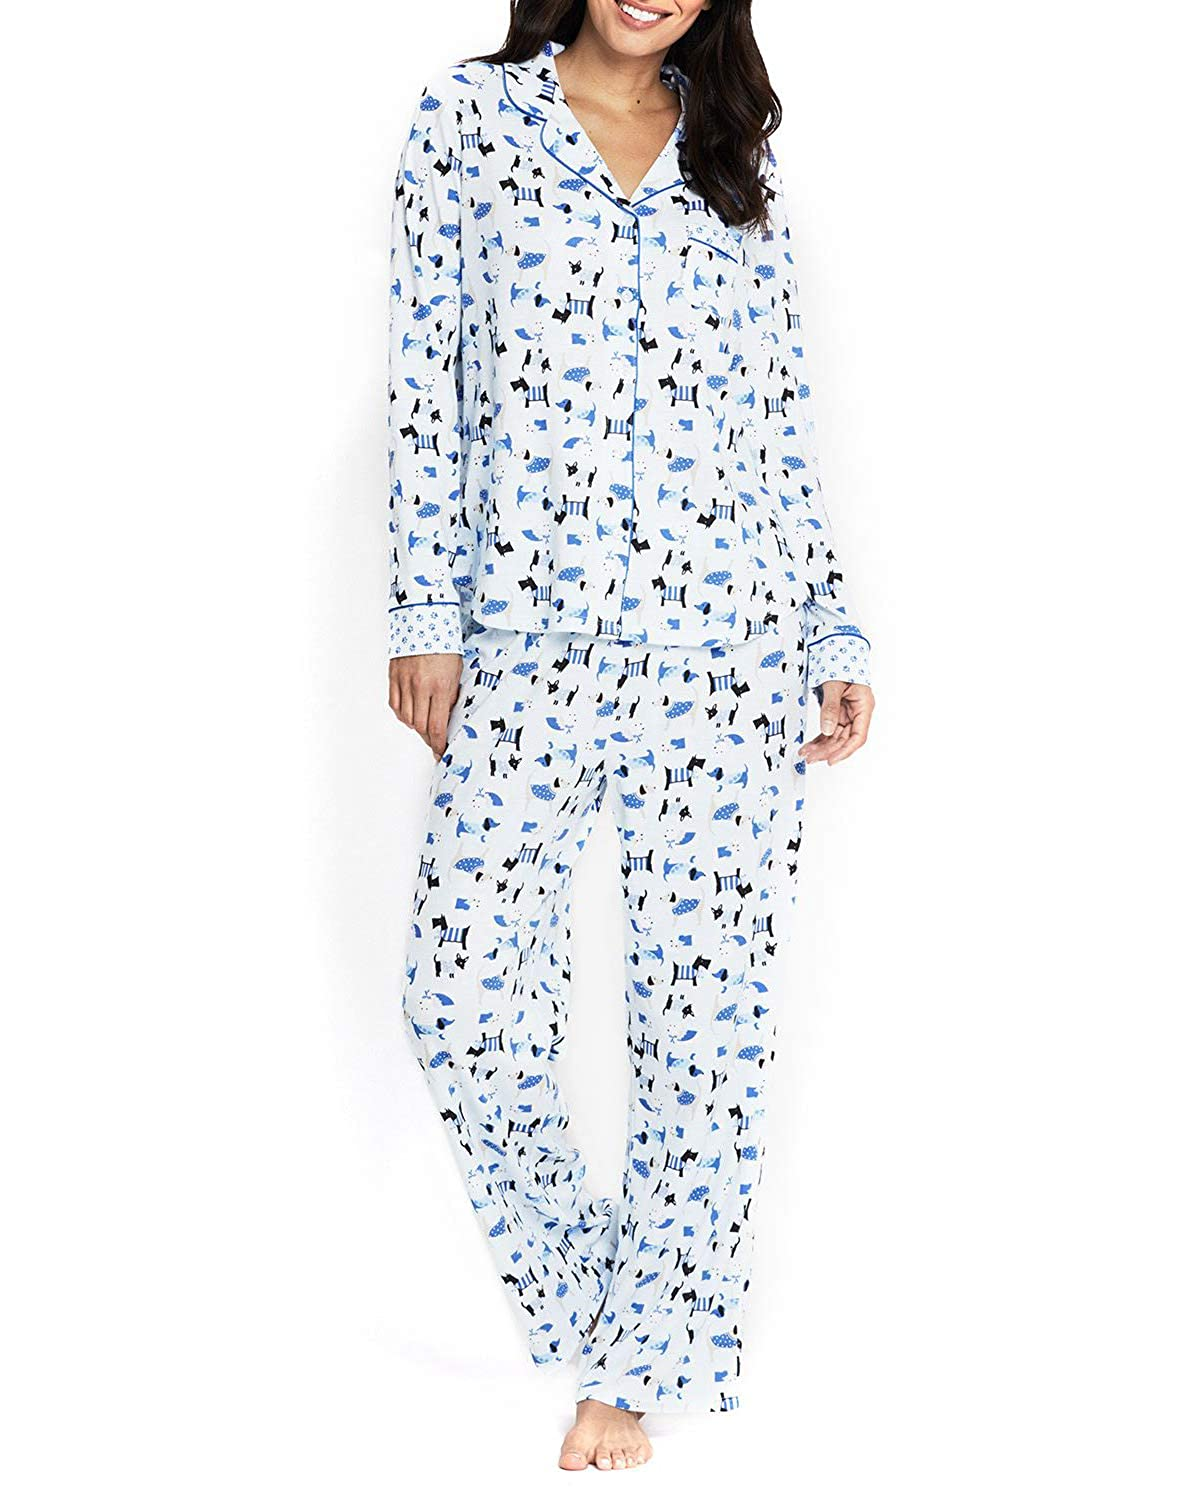 bluee Dogs Karen Neuberger Women's Pajamas PJ's